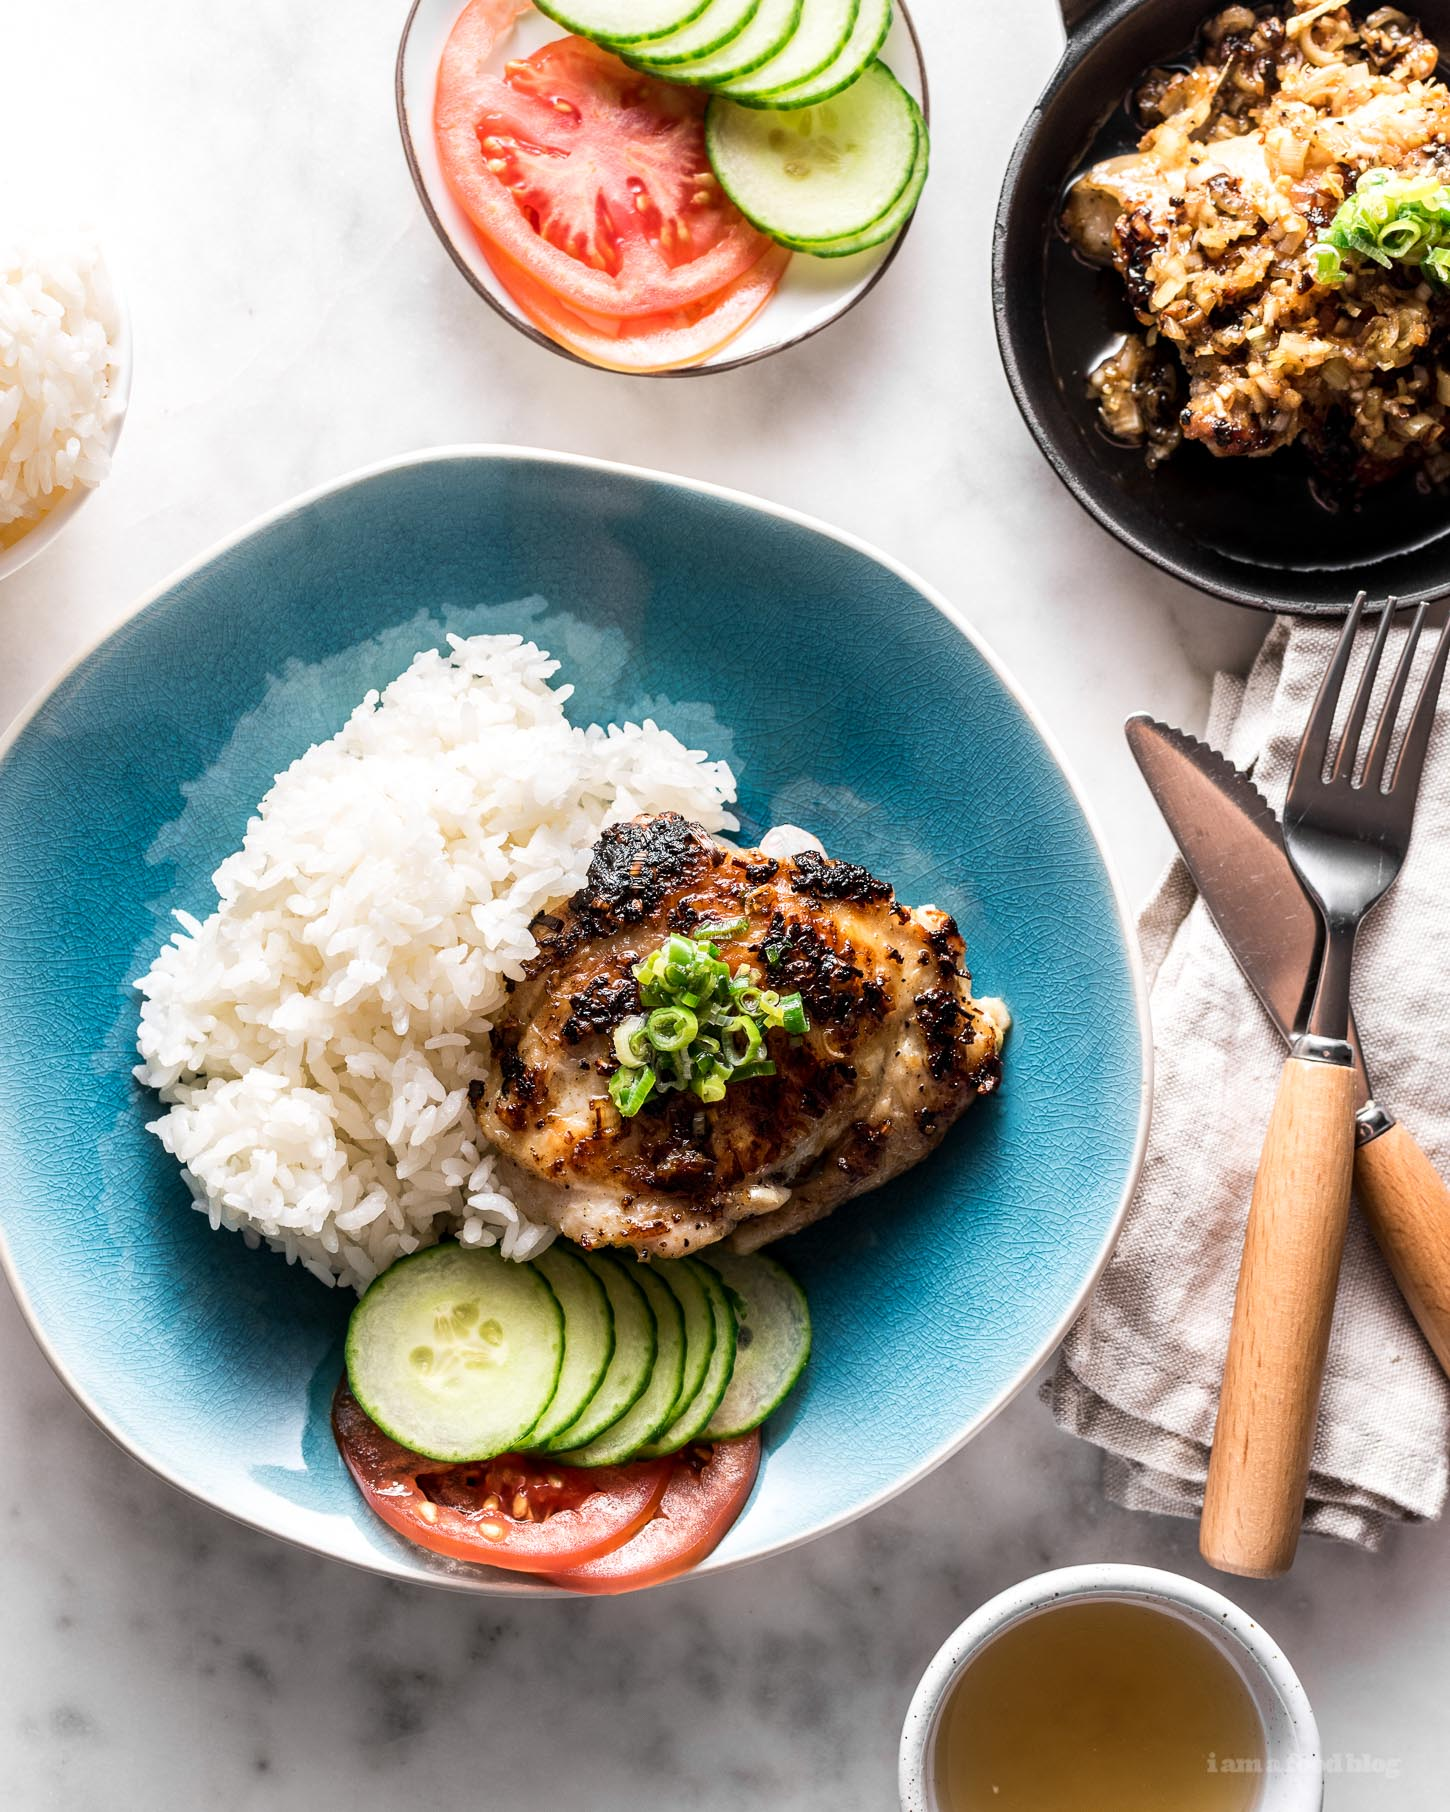 Crispy Pan Fried Lemongrass Chicken Recipe | www.iamafoodblog.com